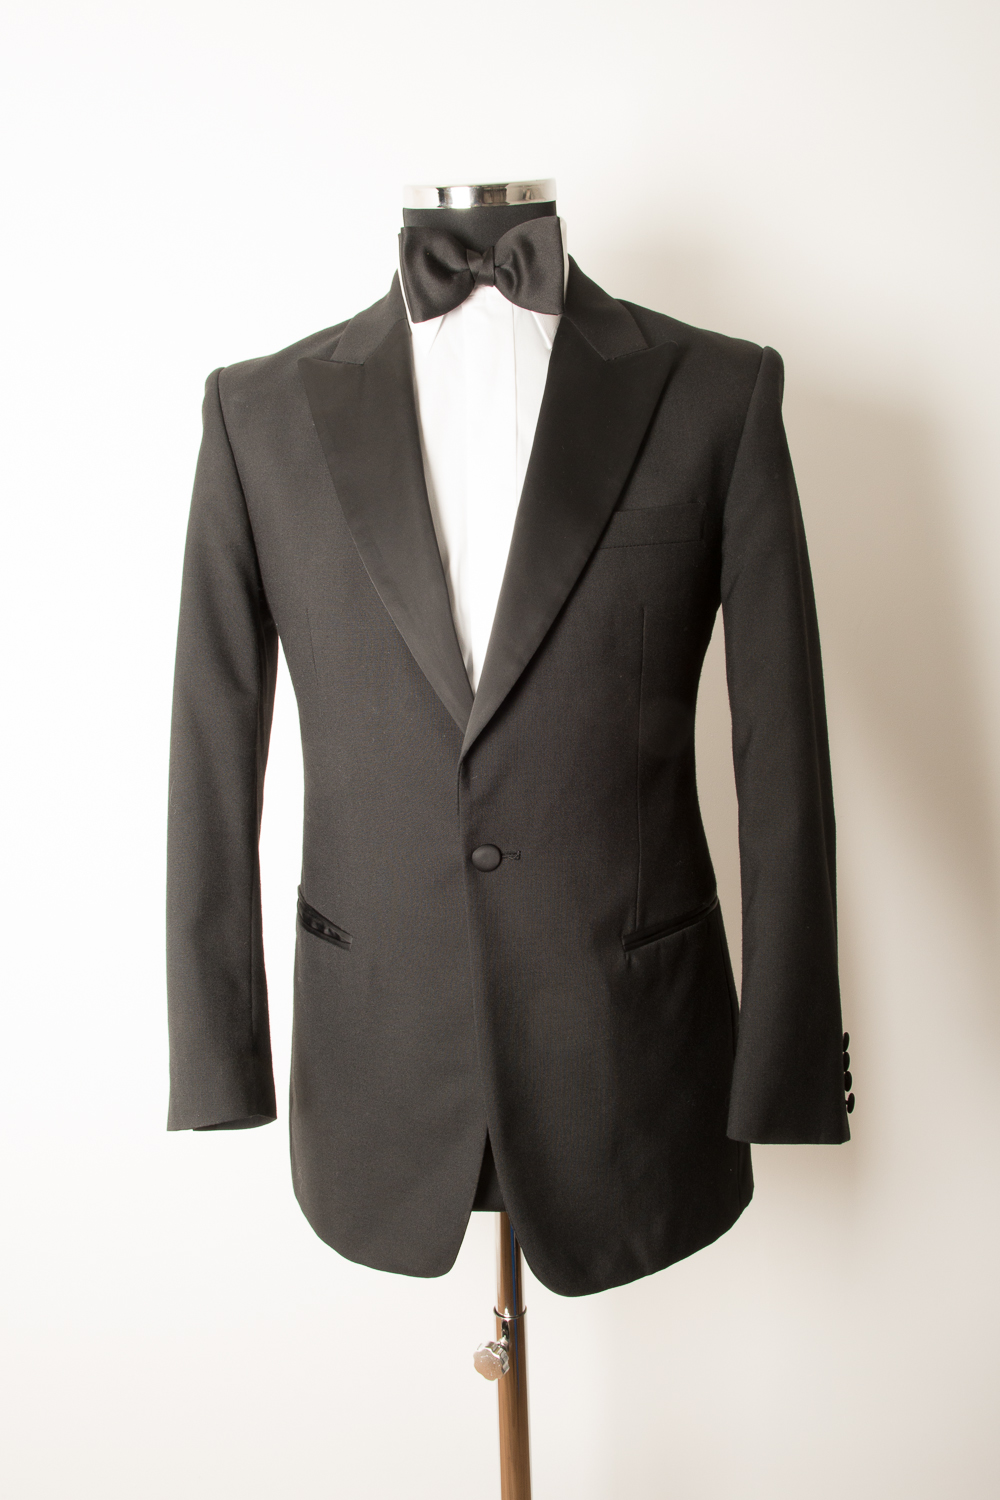 CLASSIC SINGLE BREASTED DINNER SUIT